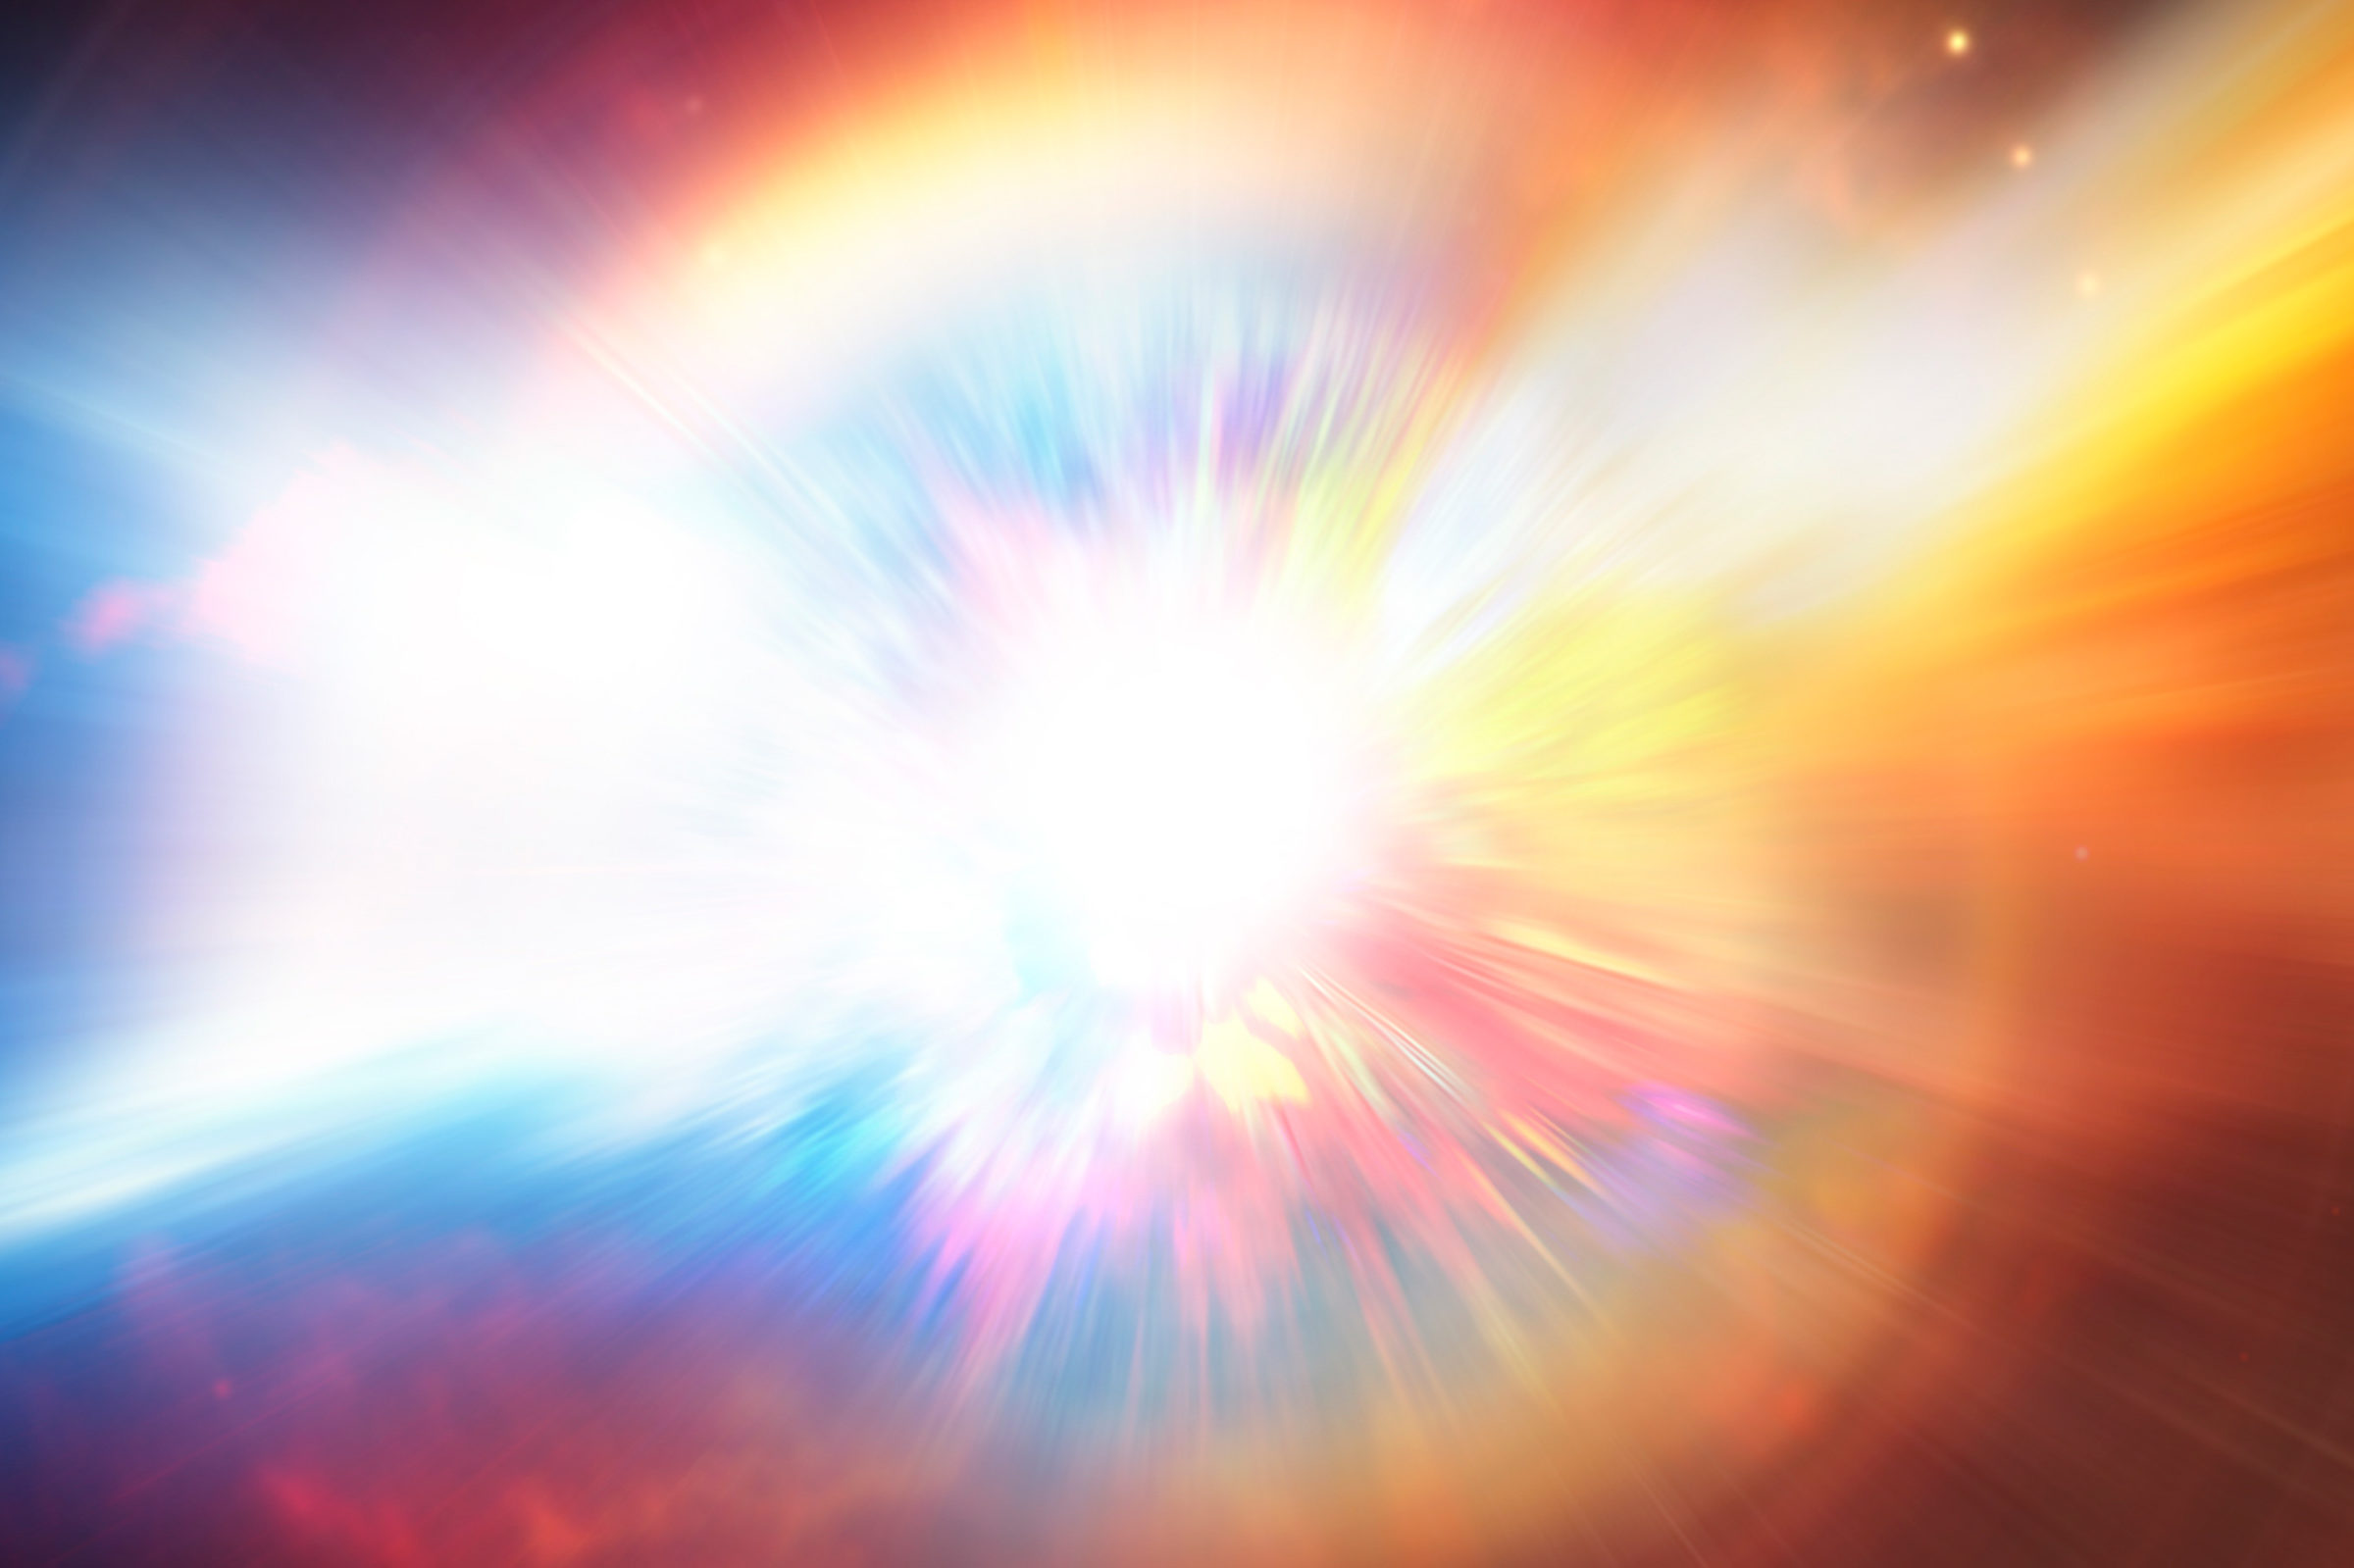 Digital illustration of an exploding star